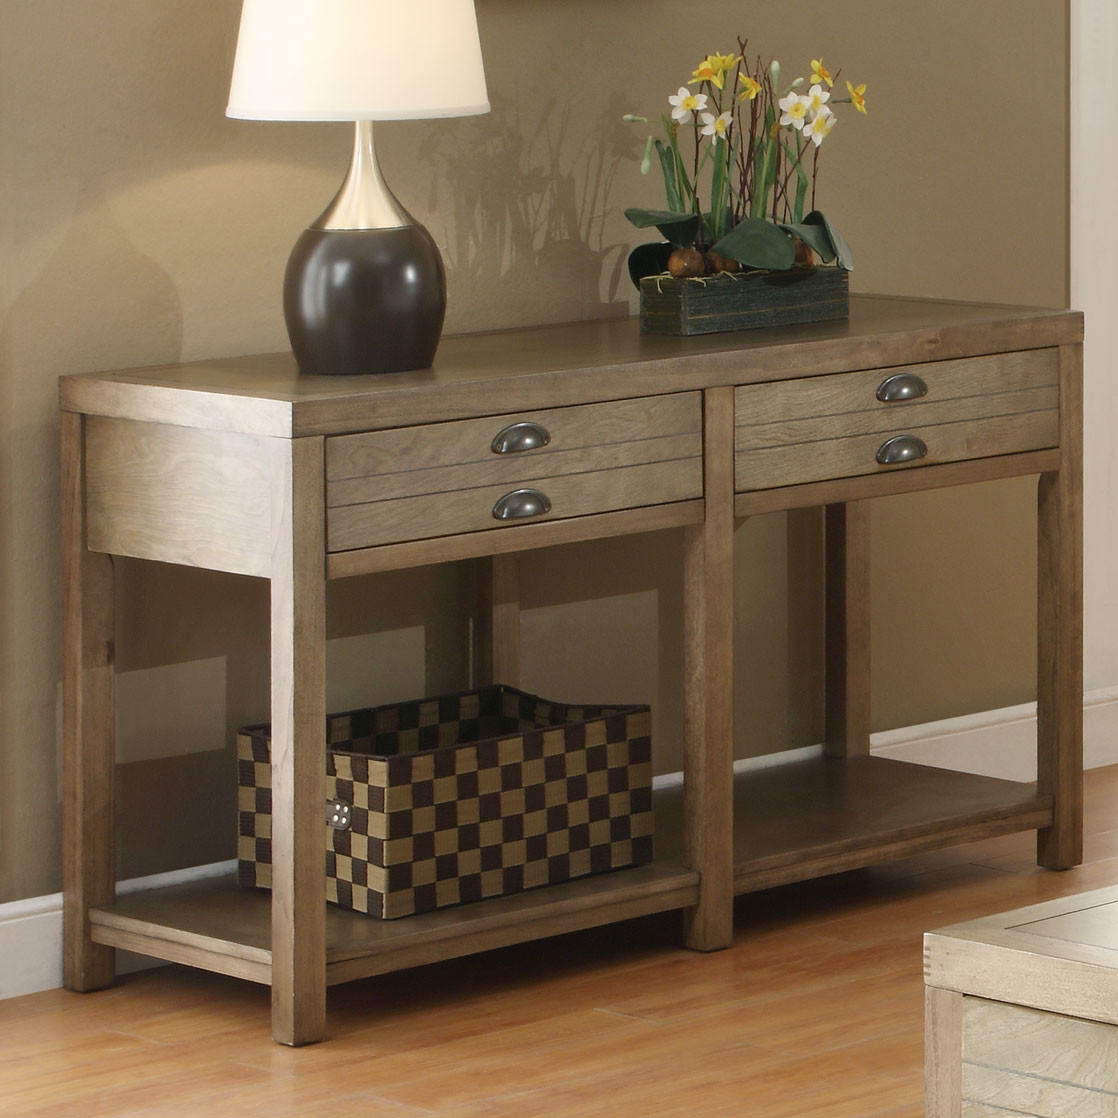 Foyer Storage Console Table : Discover different types of foyer tables for your entry